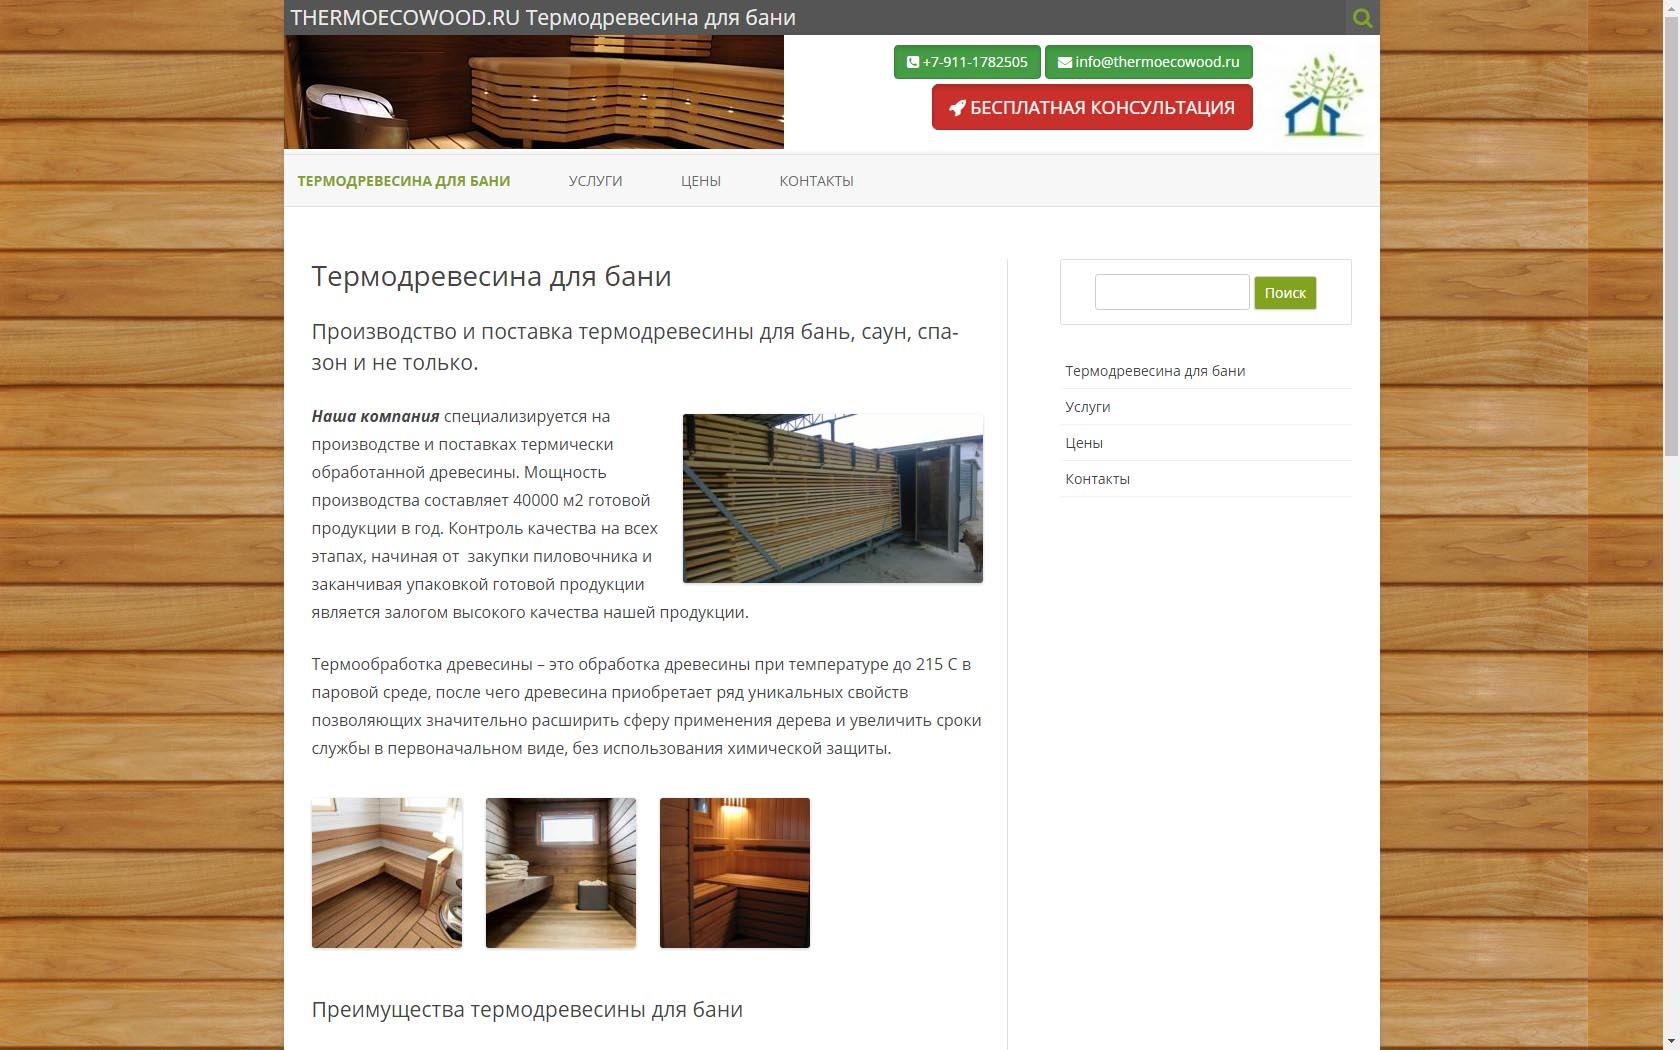 thermoecowood